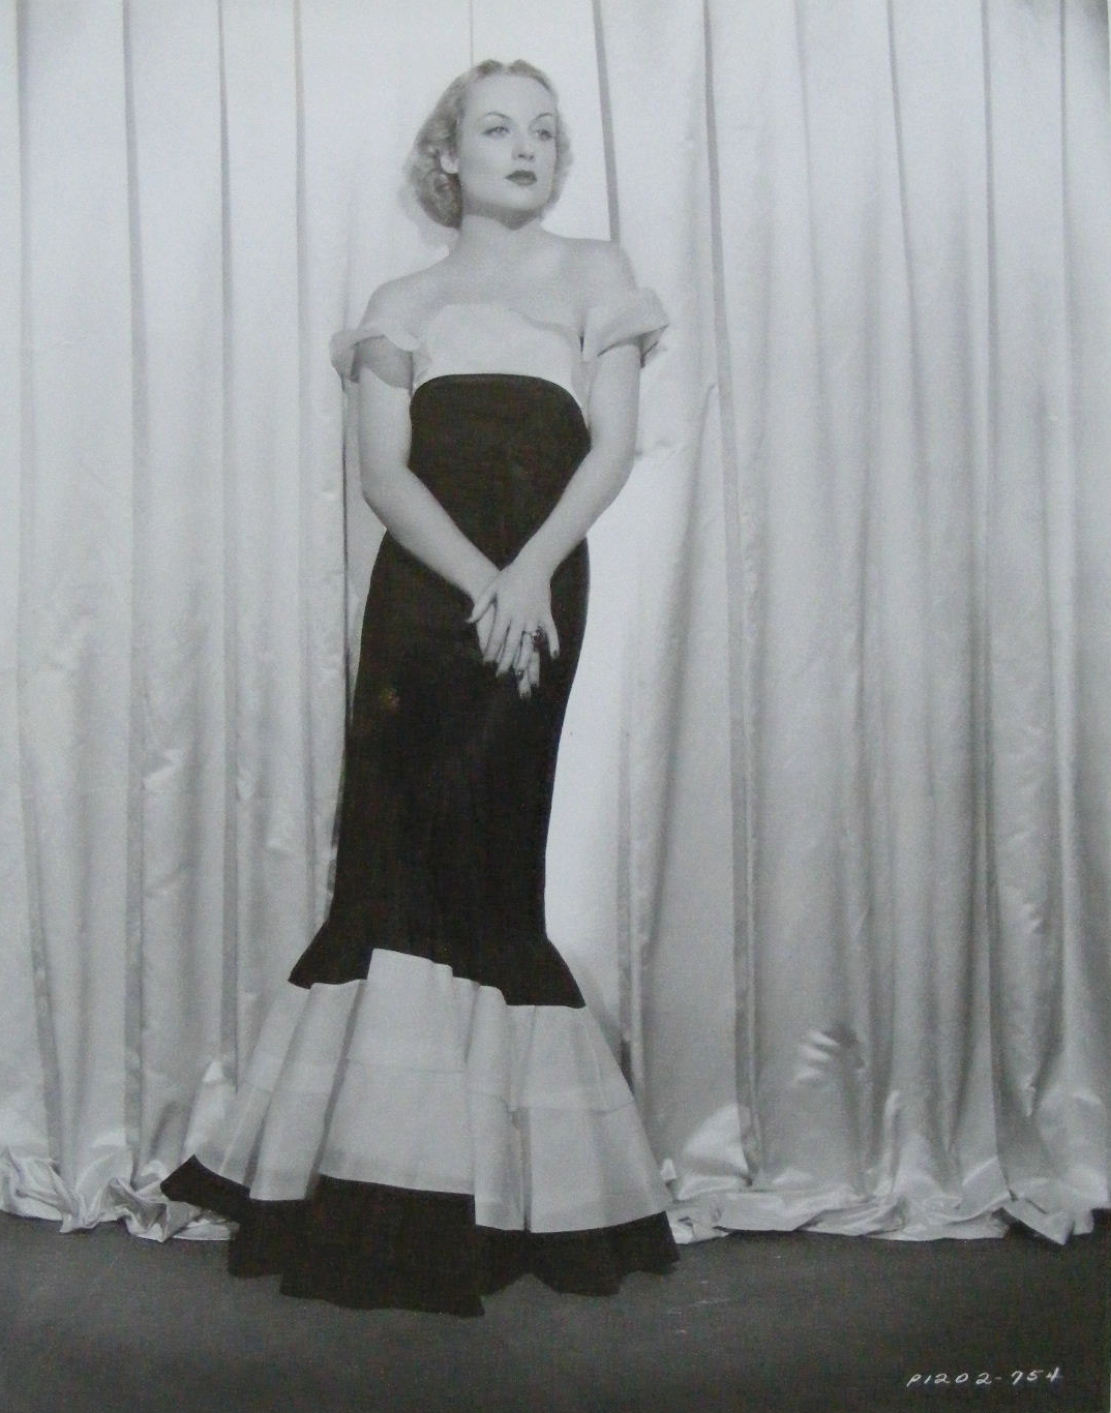 carole lombard p1202-754a large front